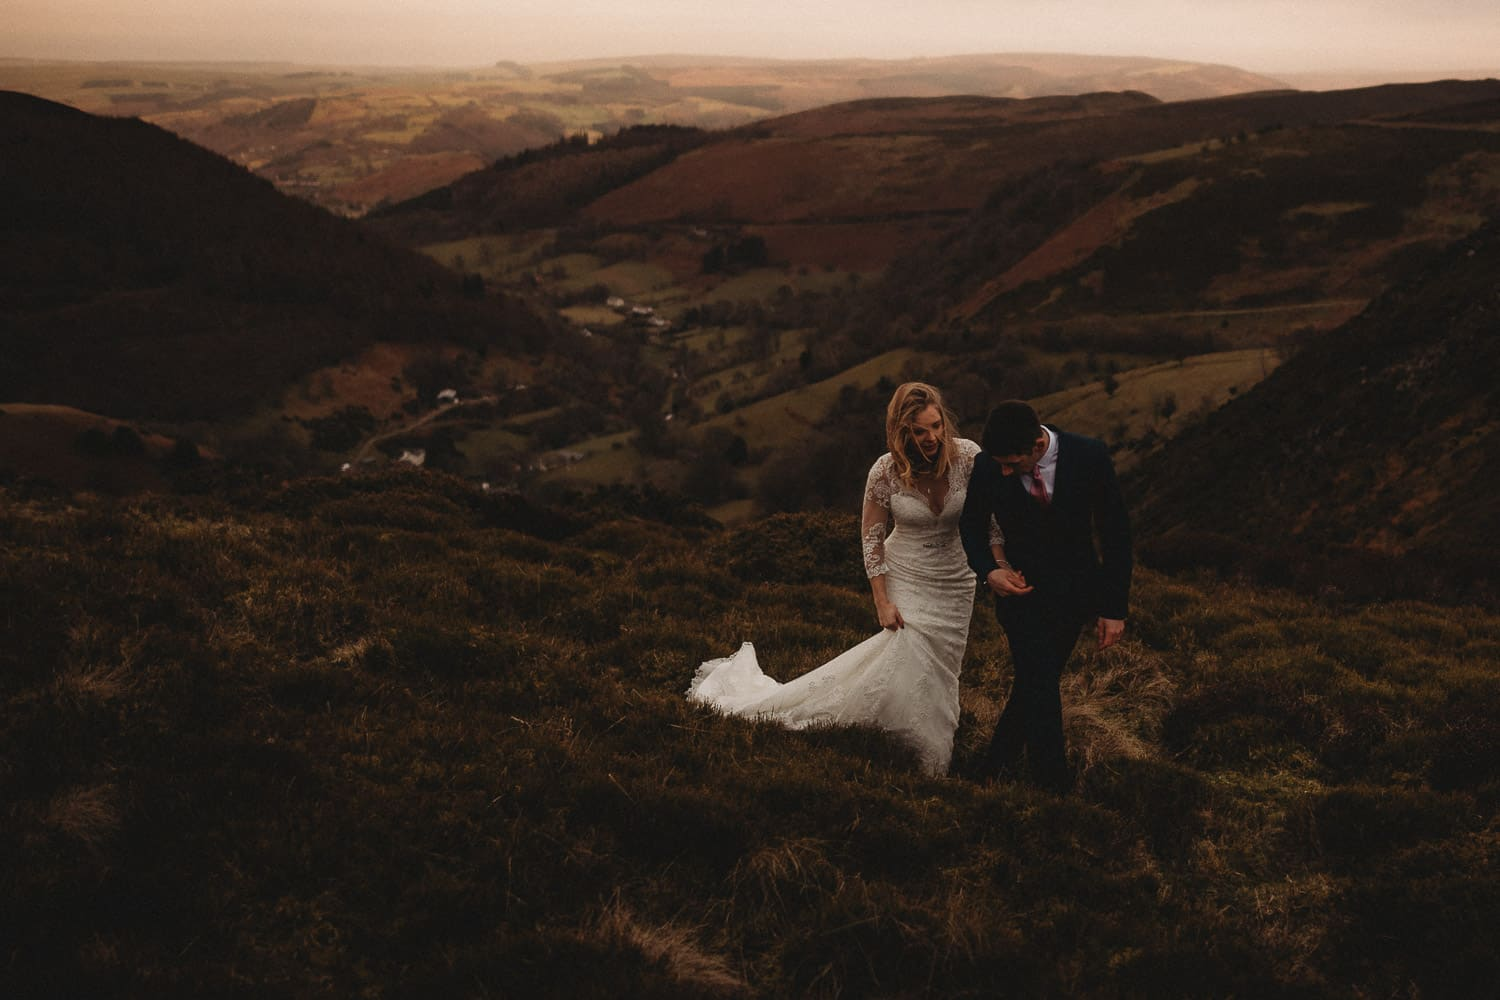 North Wales Wedding Photographer couple dressed in wedding dress and suit walking across the heather in the hills above Llangollen